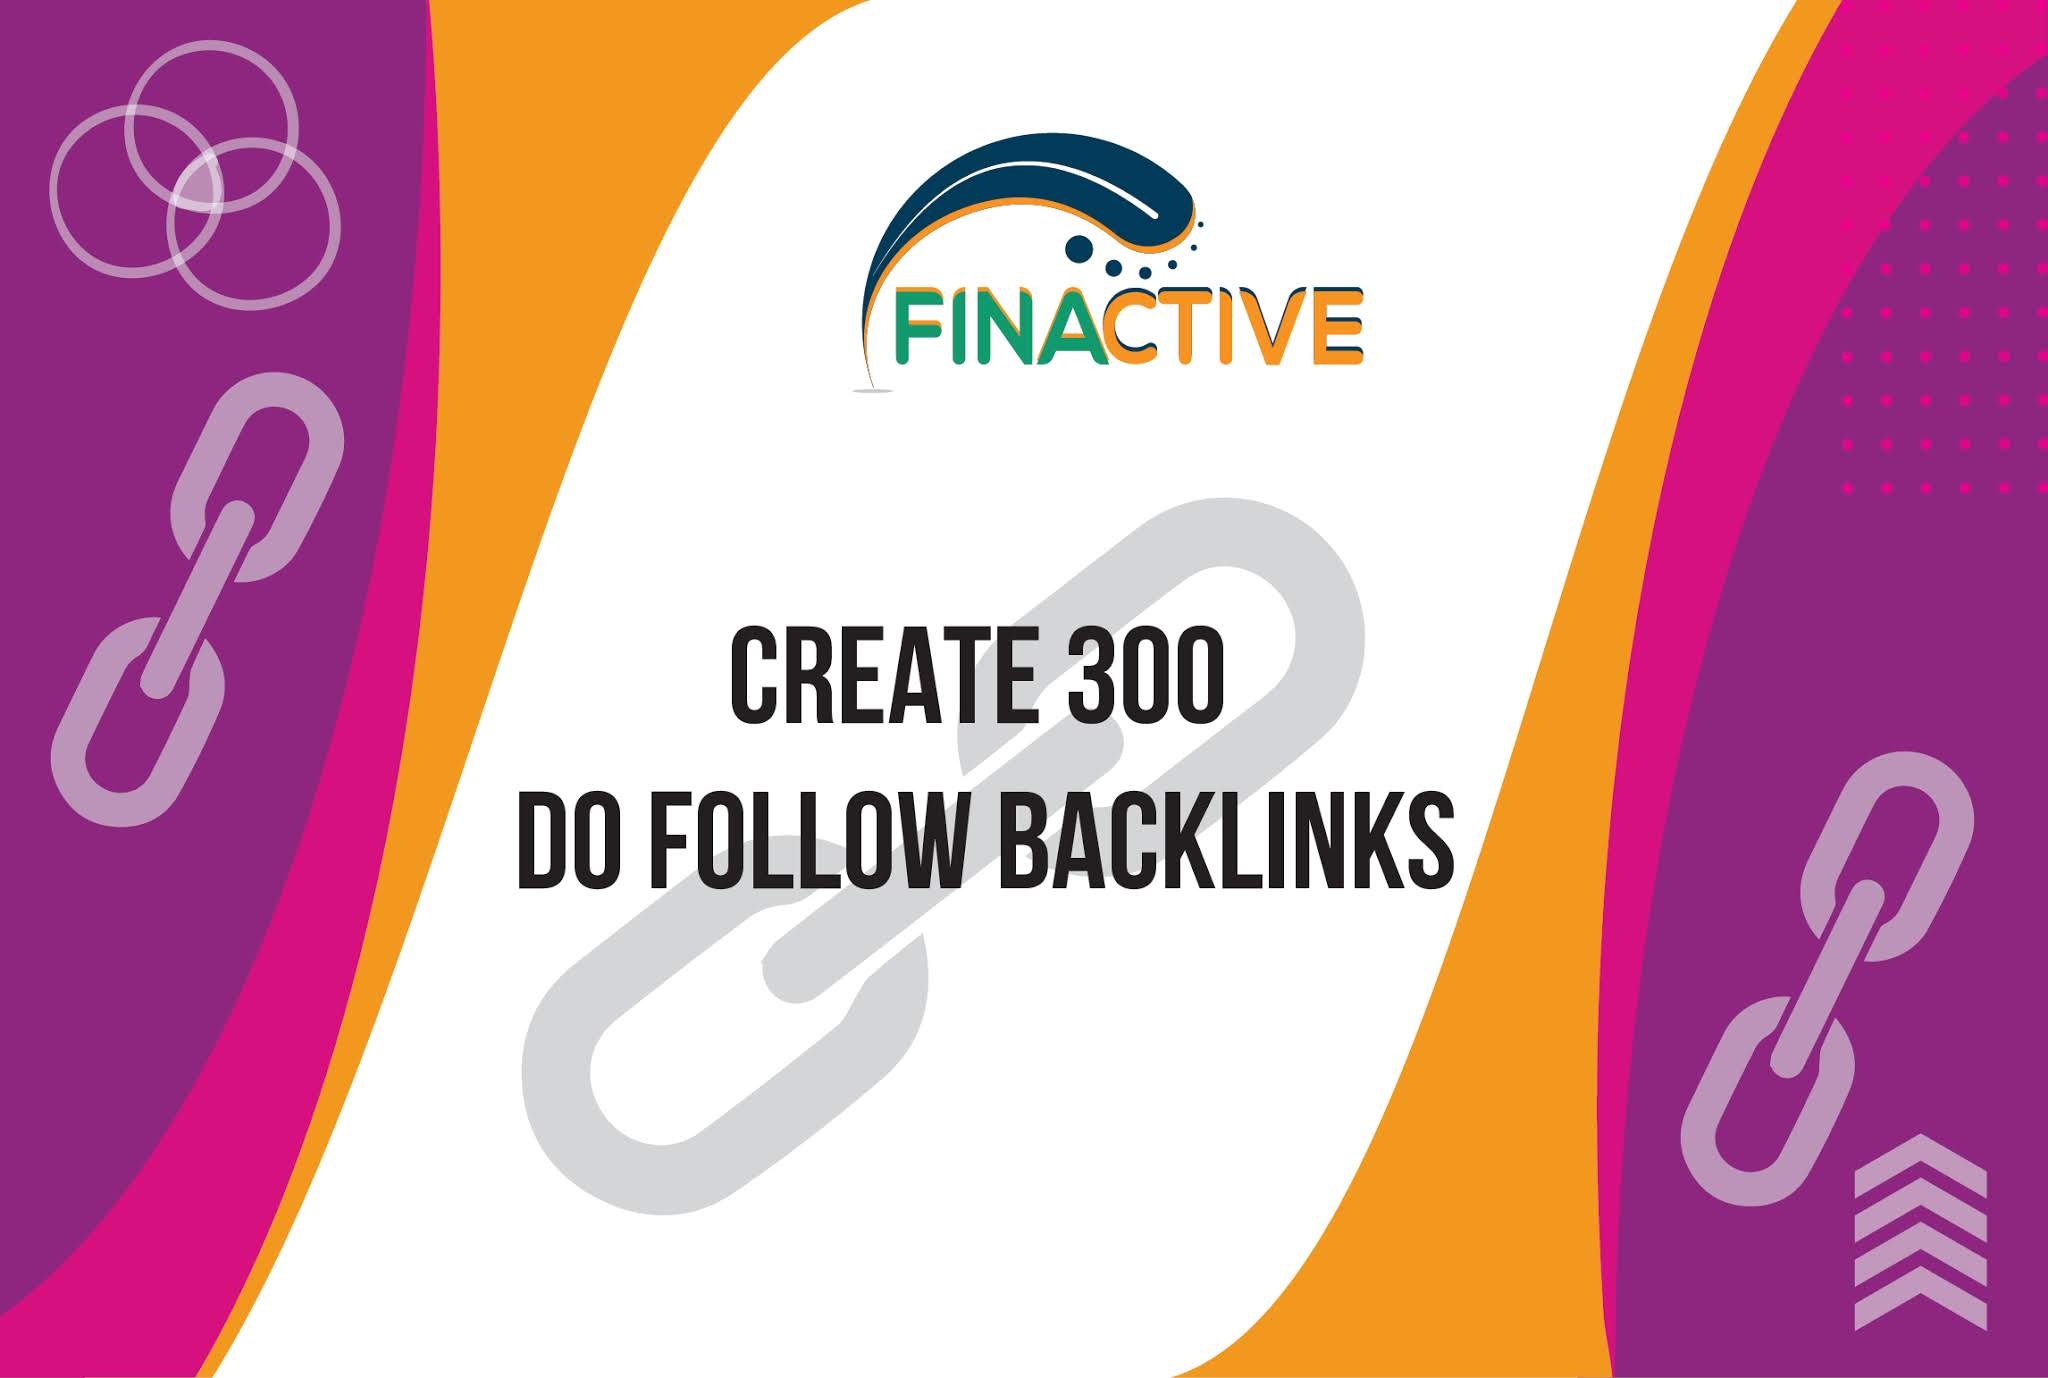 We will create 300 do-follow backlinks for your website